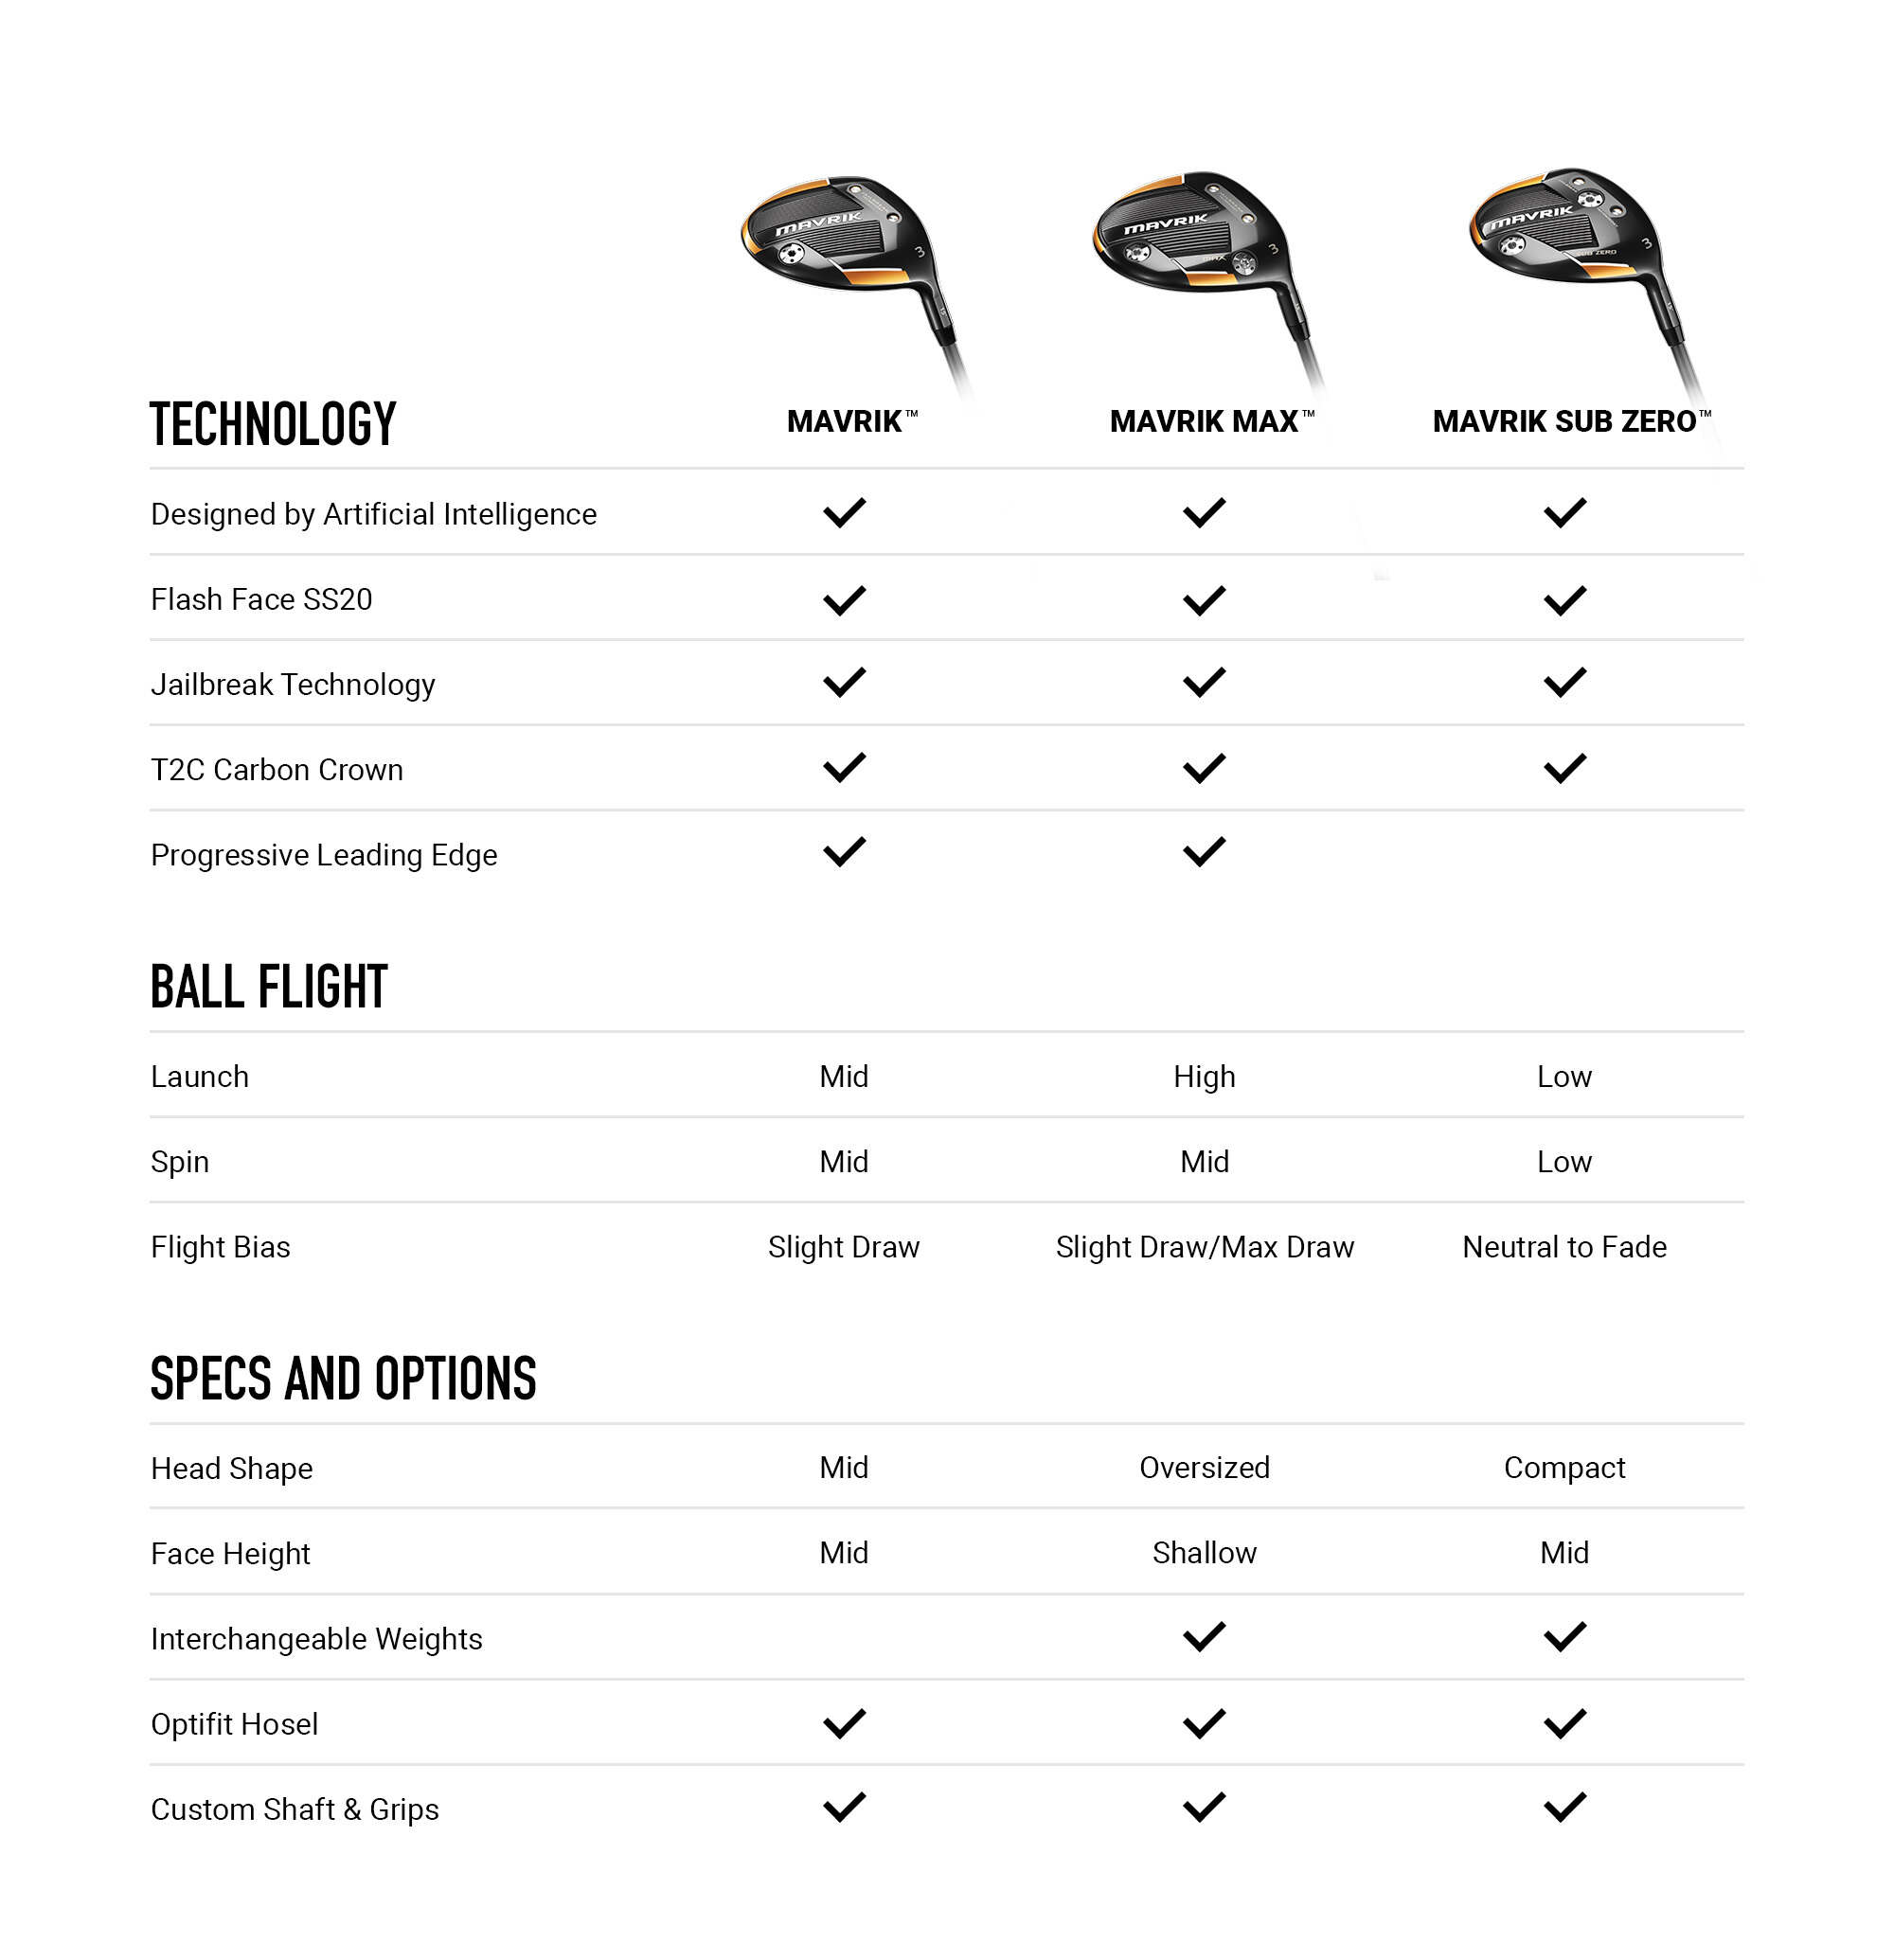 Callaway MAVRIK Fairway Wood Comparison Chart